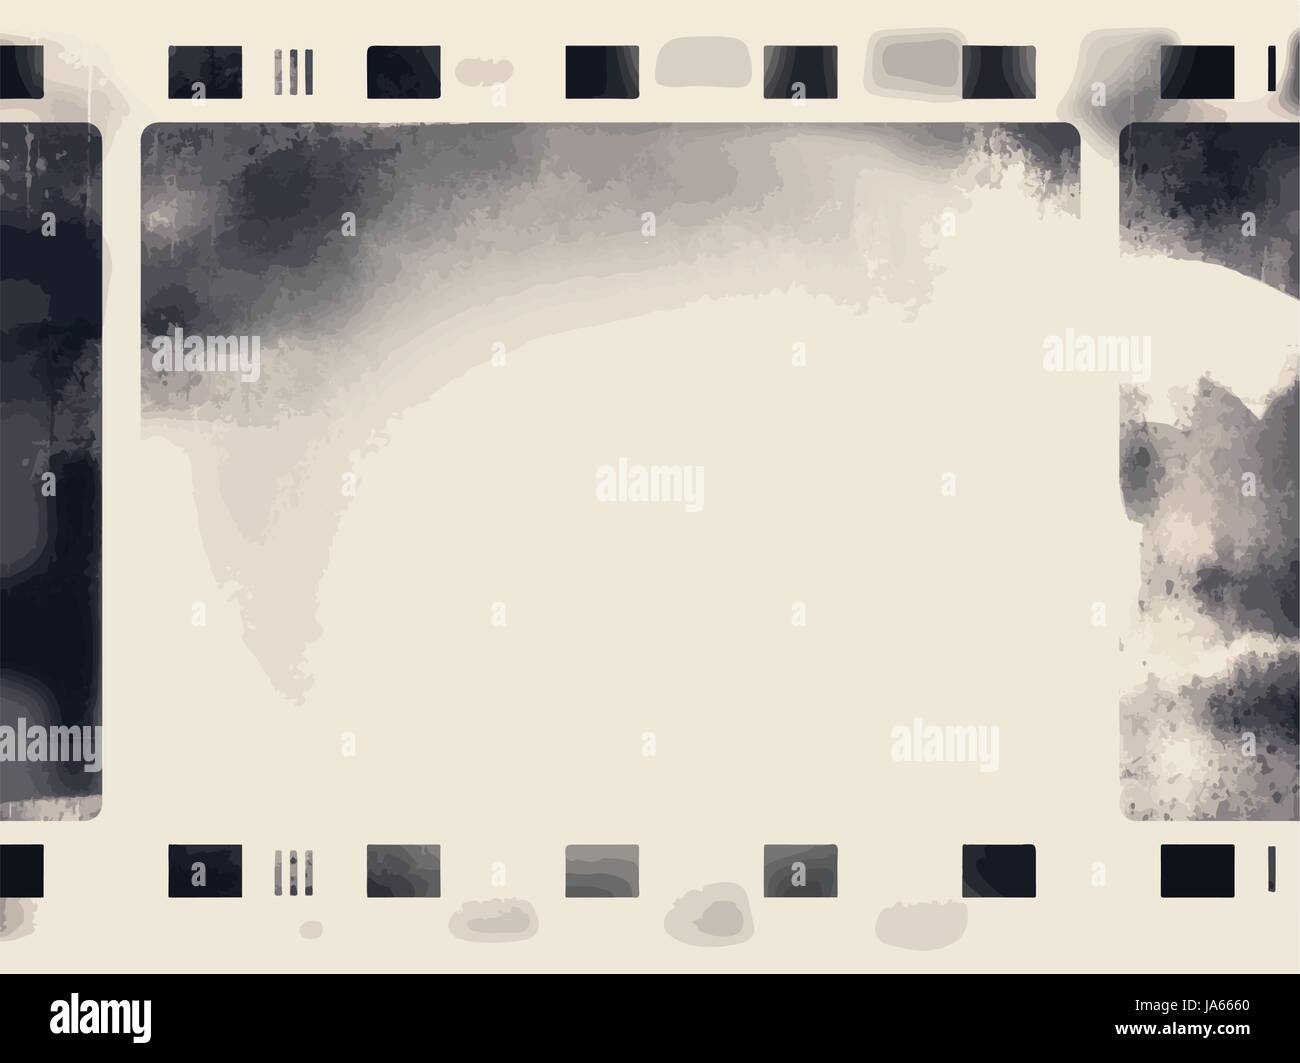 Grunge Camera Vector : Grunge vector frame or distressed texture . large high detailed